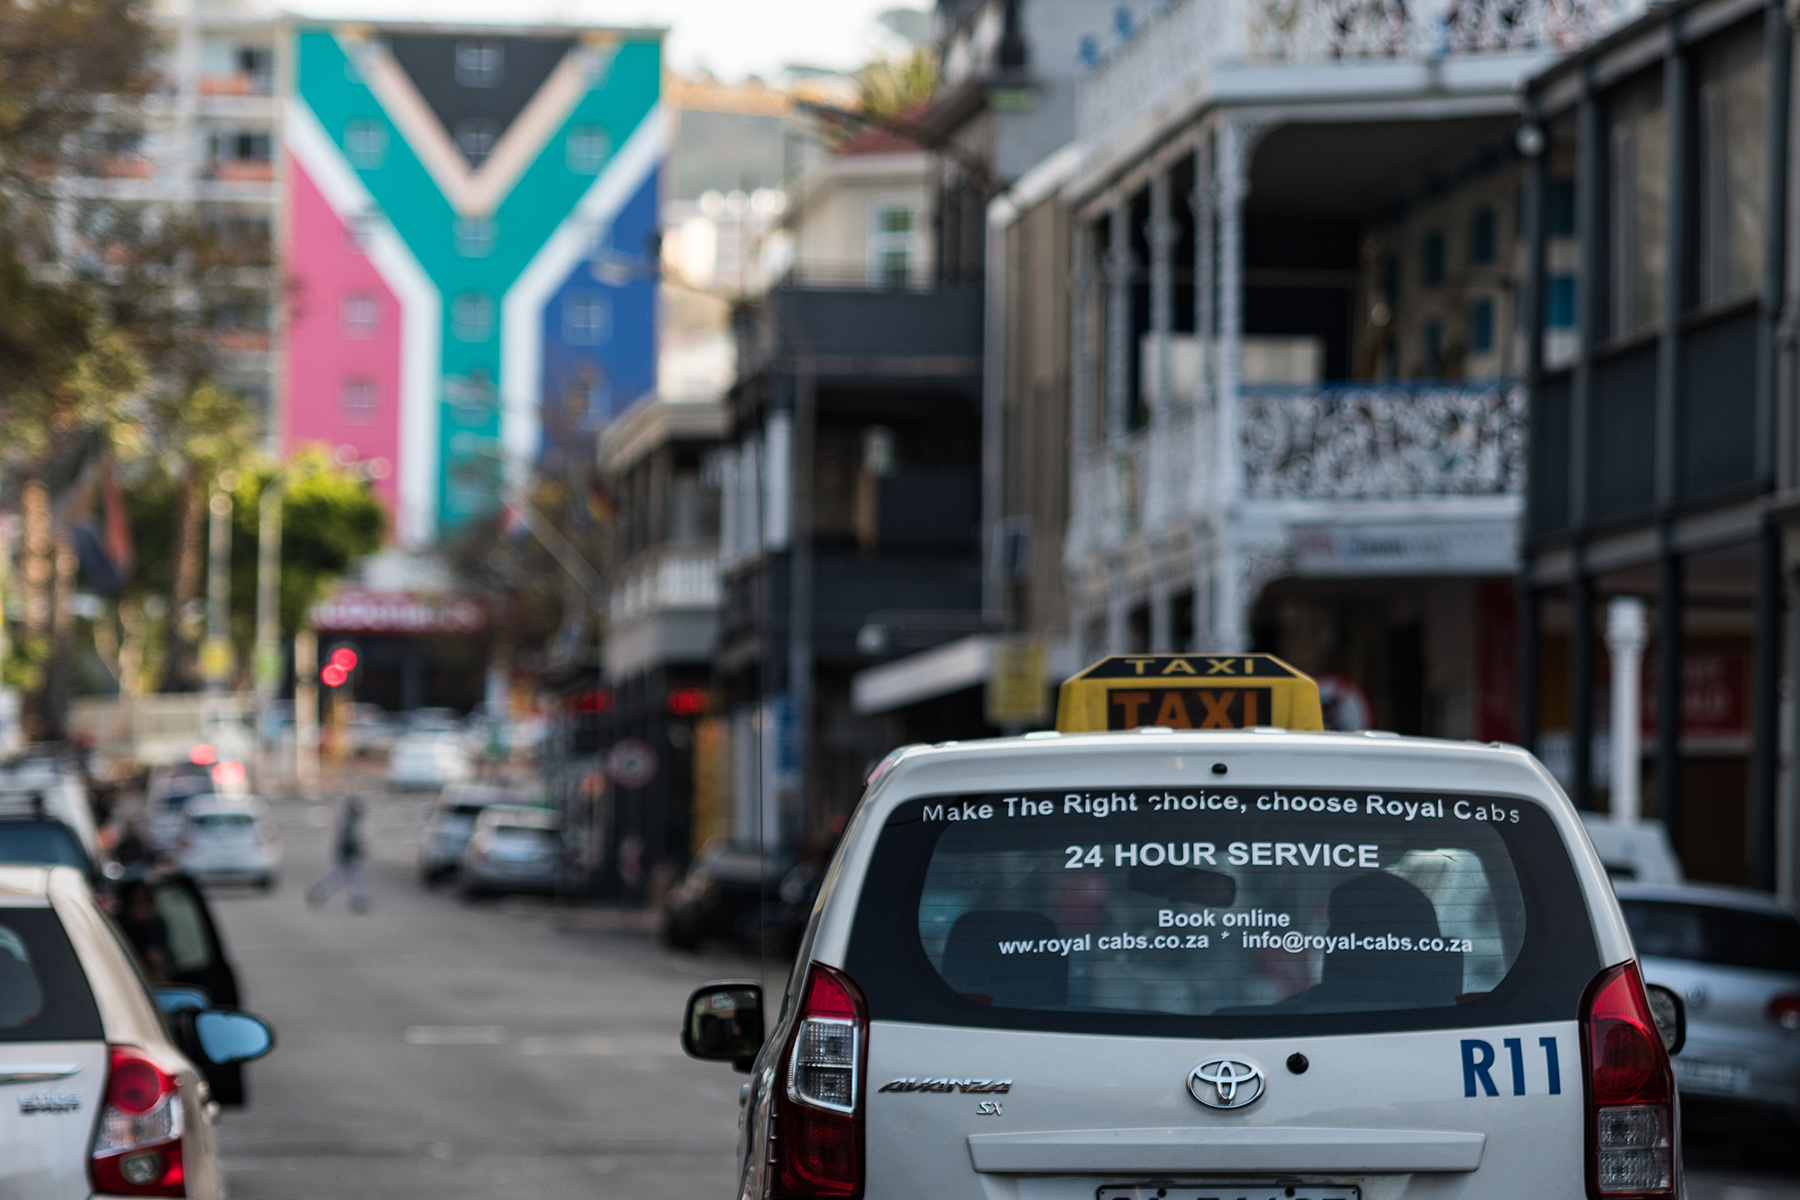 Taxi in Cape Town